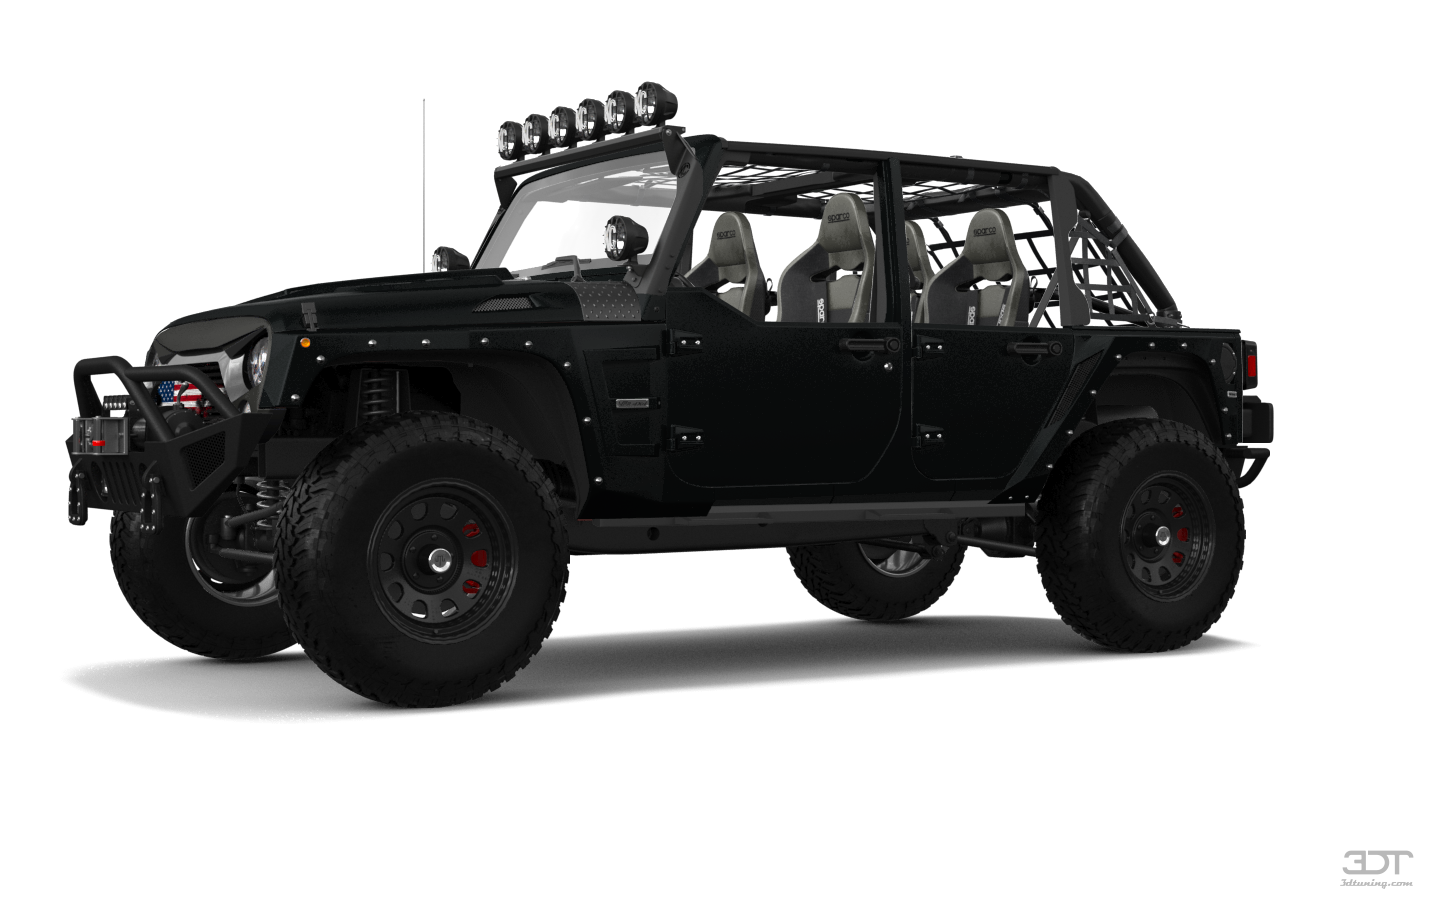 Jeep Wrangler Unlimited JK Rubicon Recon'17